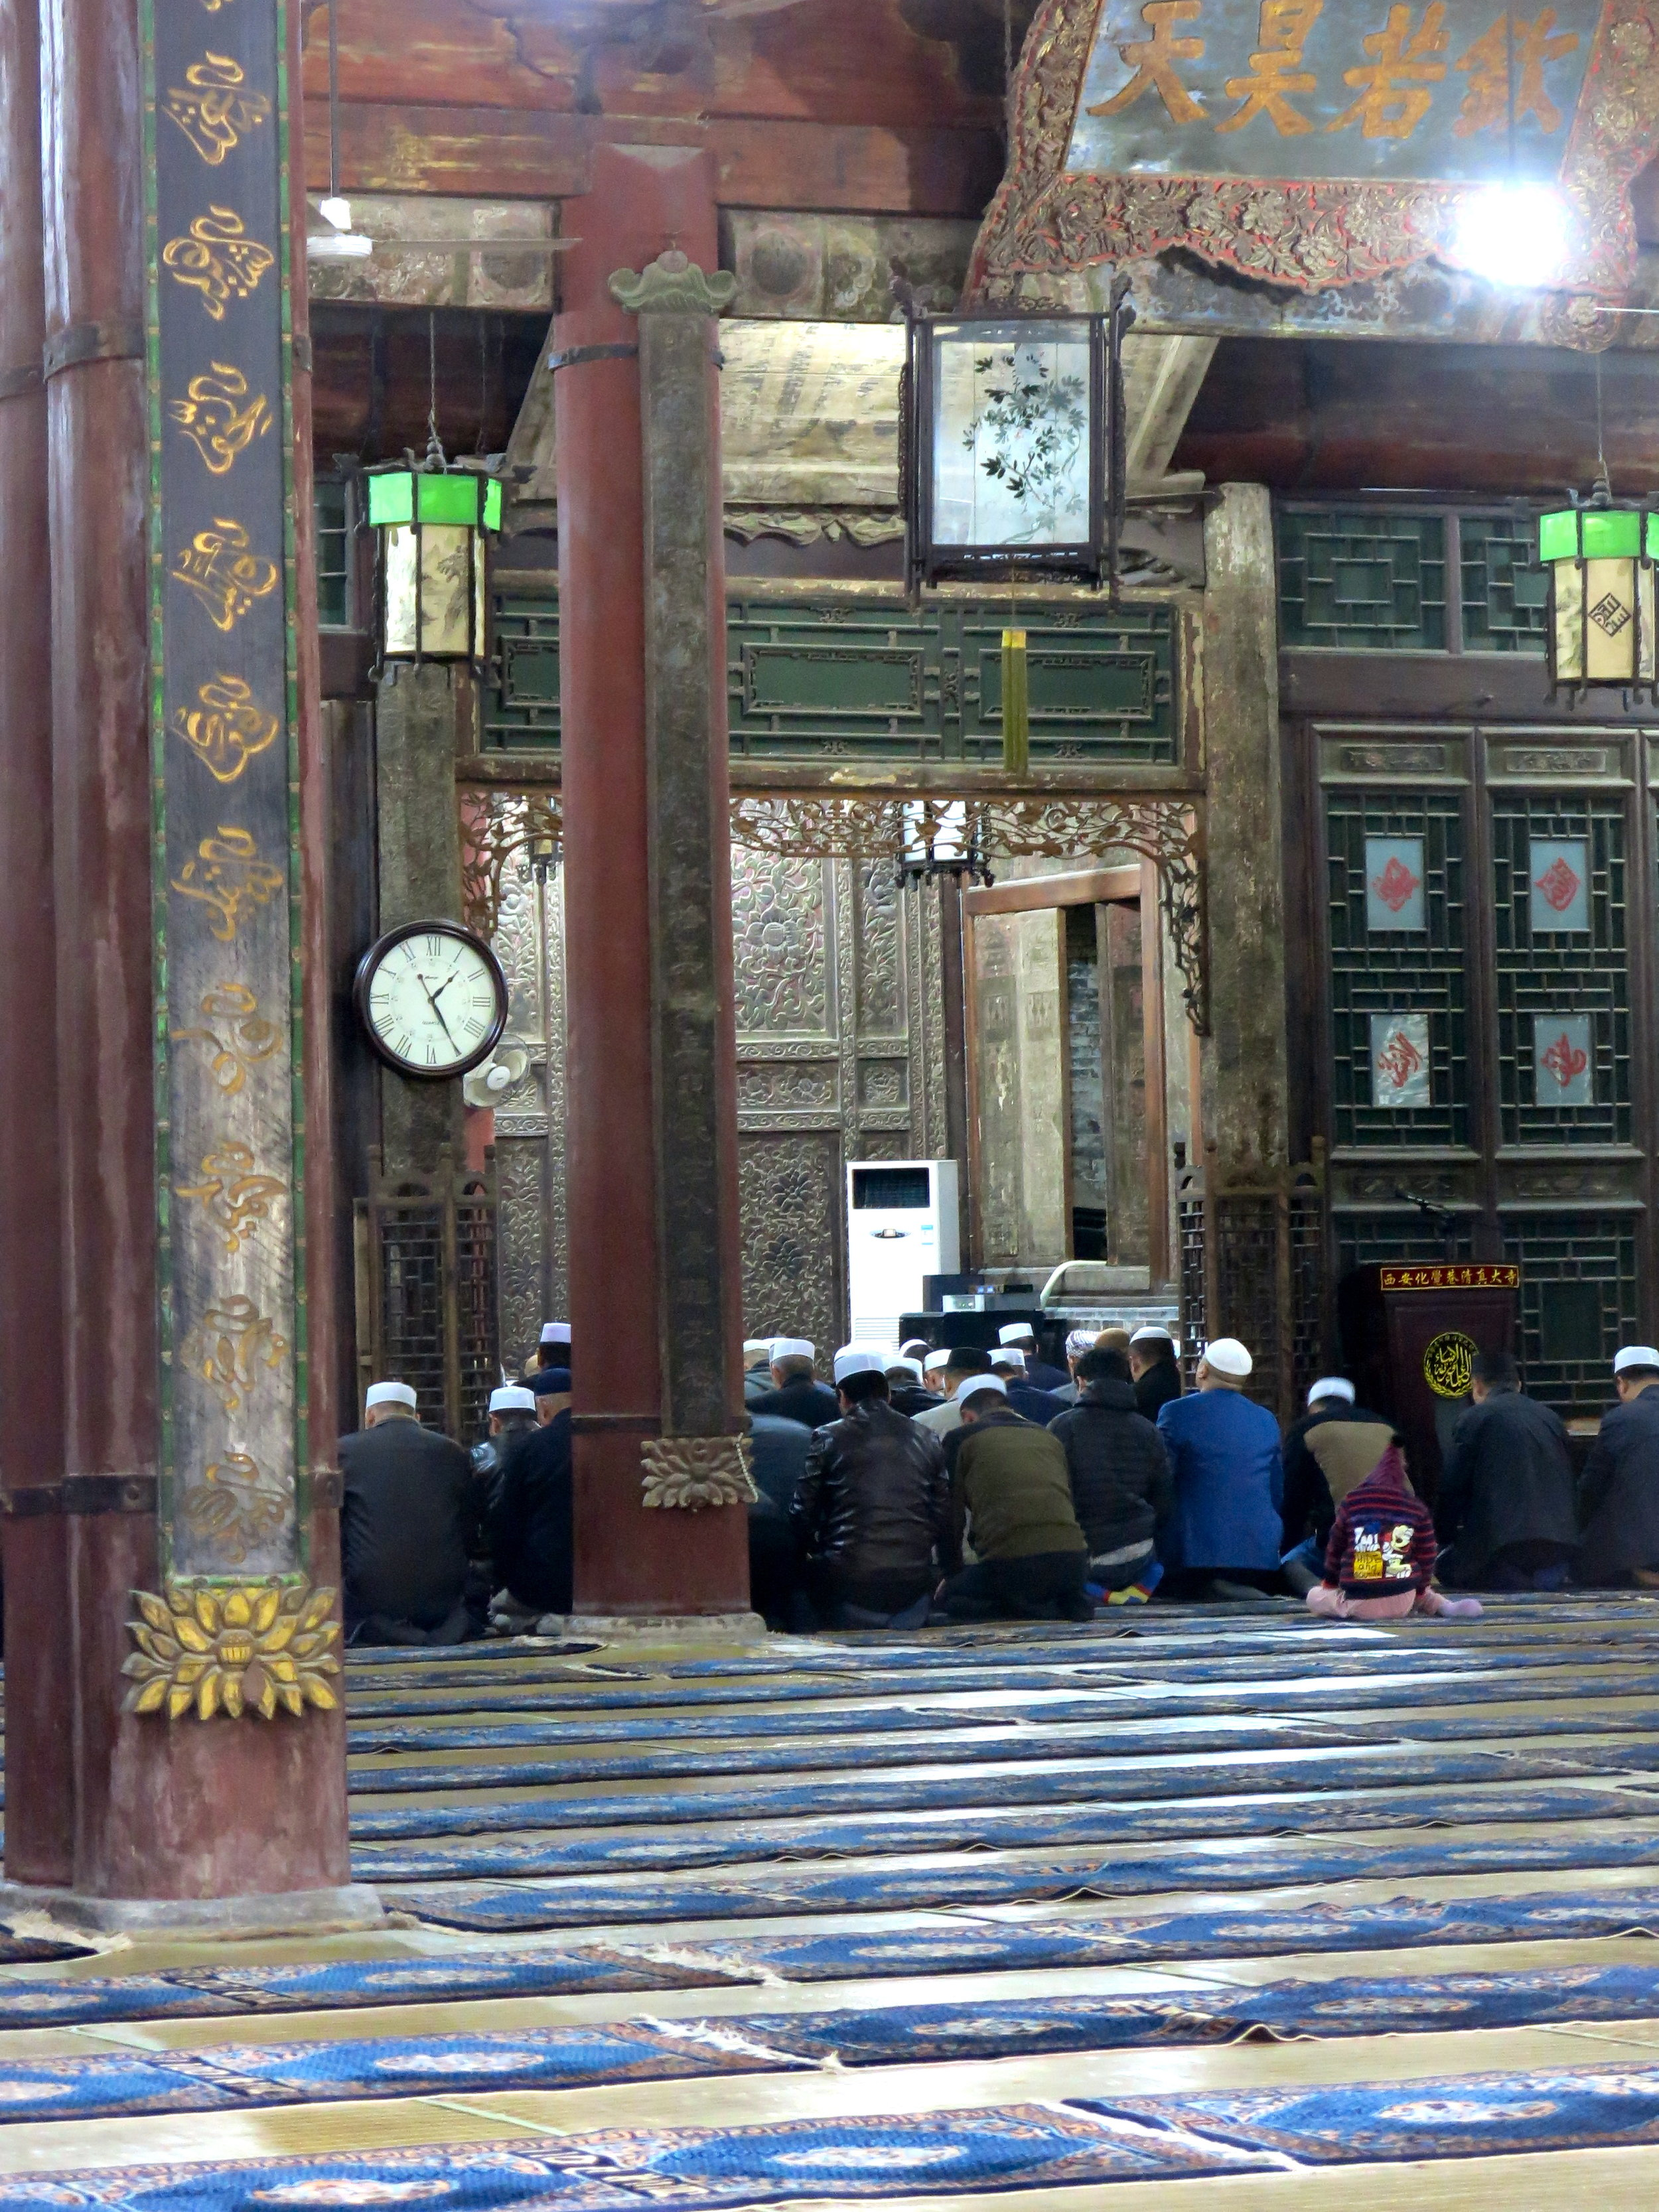 Hui men praying in the direction of Mecca in the mosque